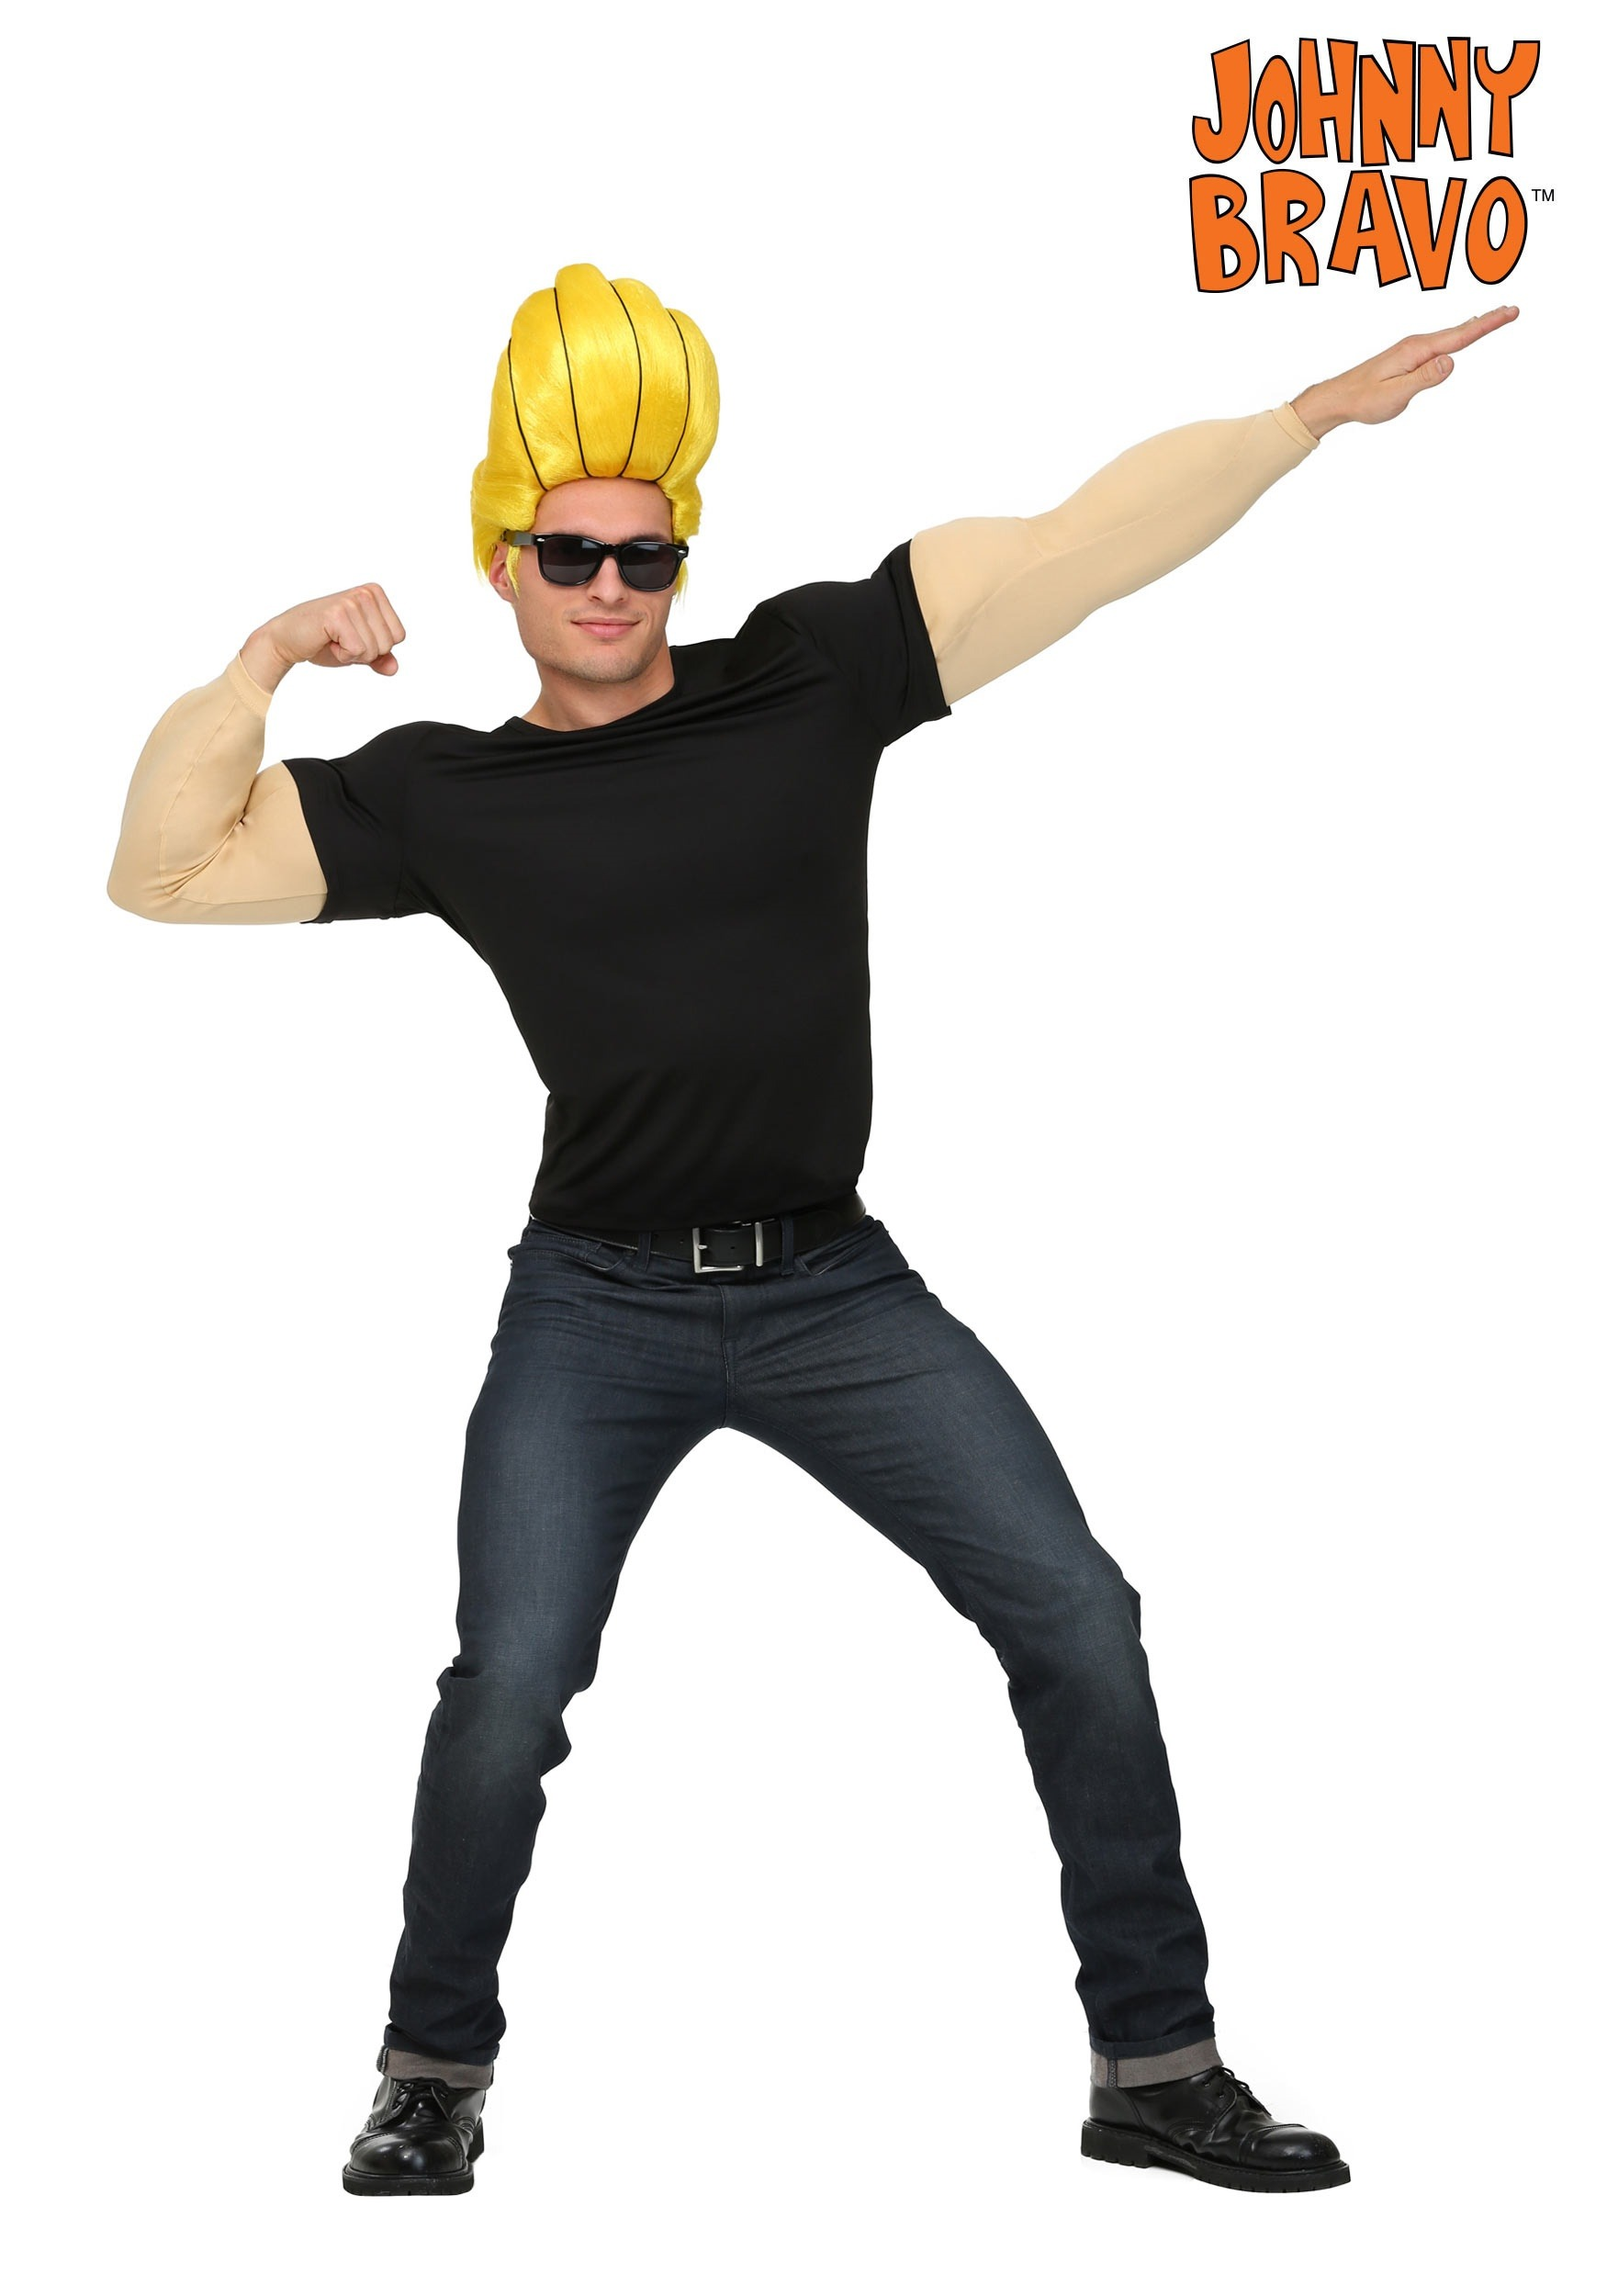 Johnny Bravo Costume for Men